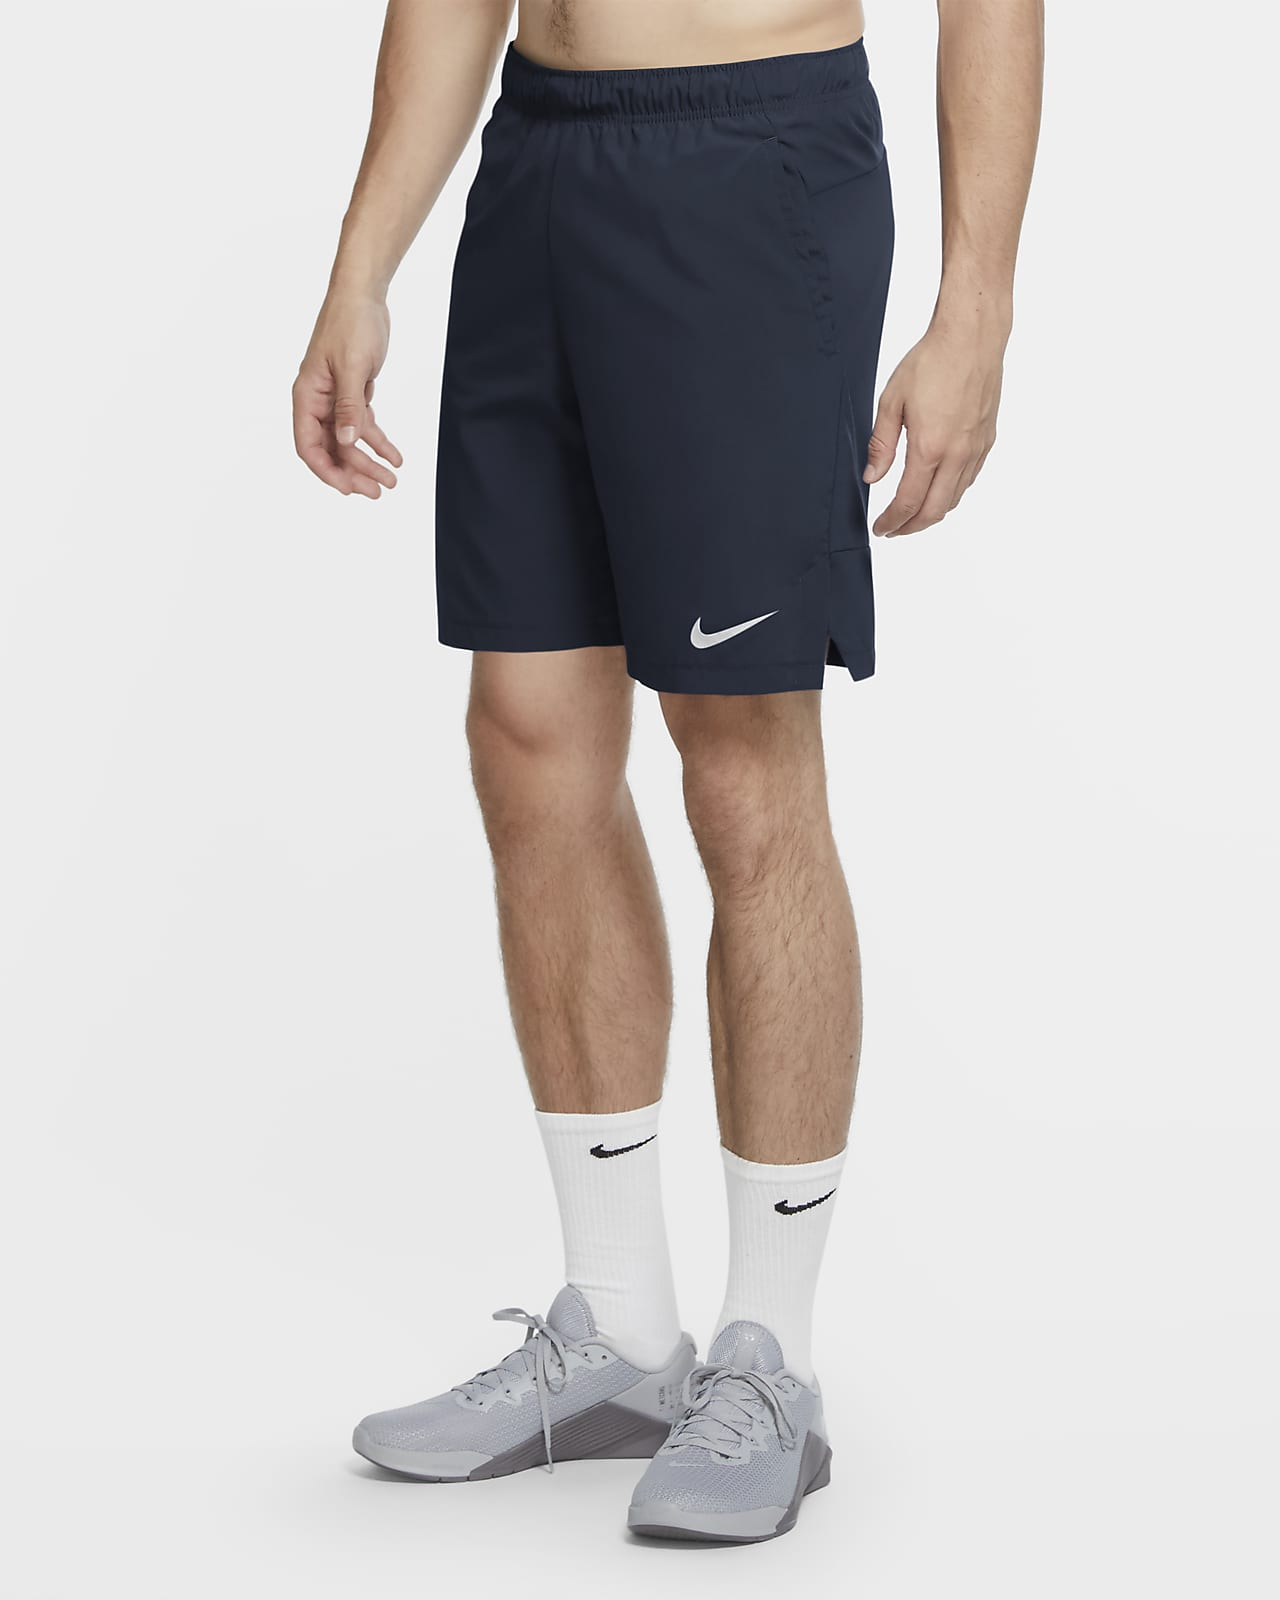 Nike Flex Men's Woven Training Shorts